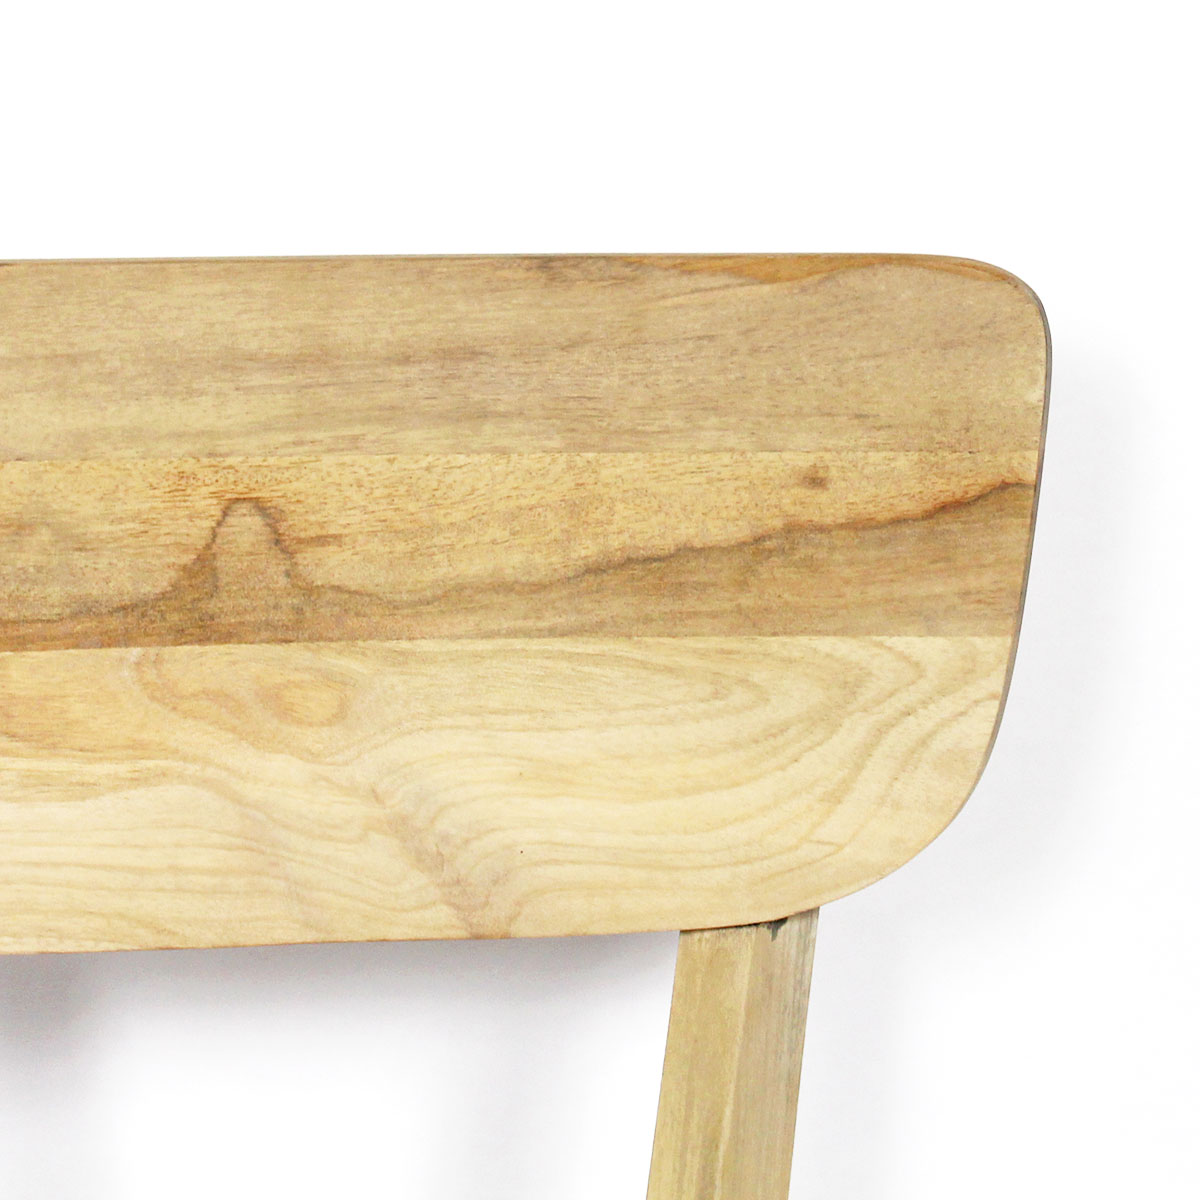 Chaise scandinave en manguier massif